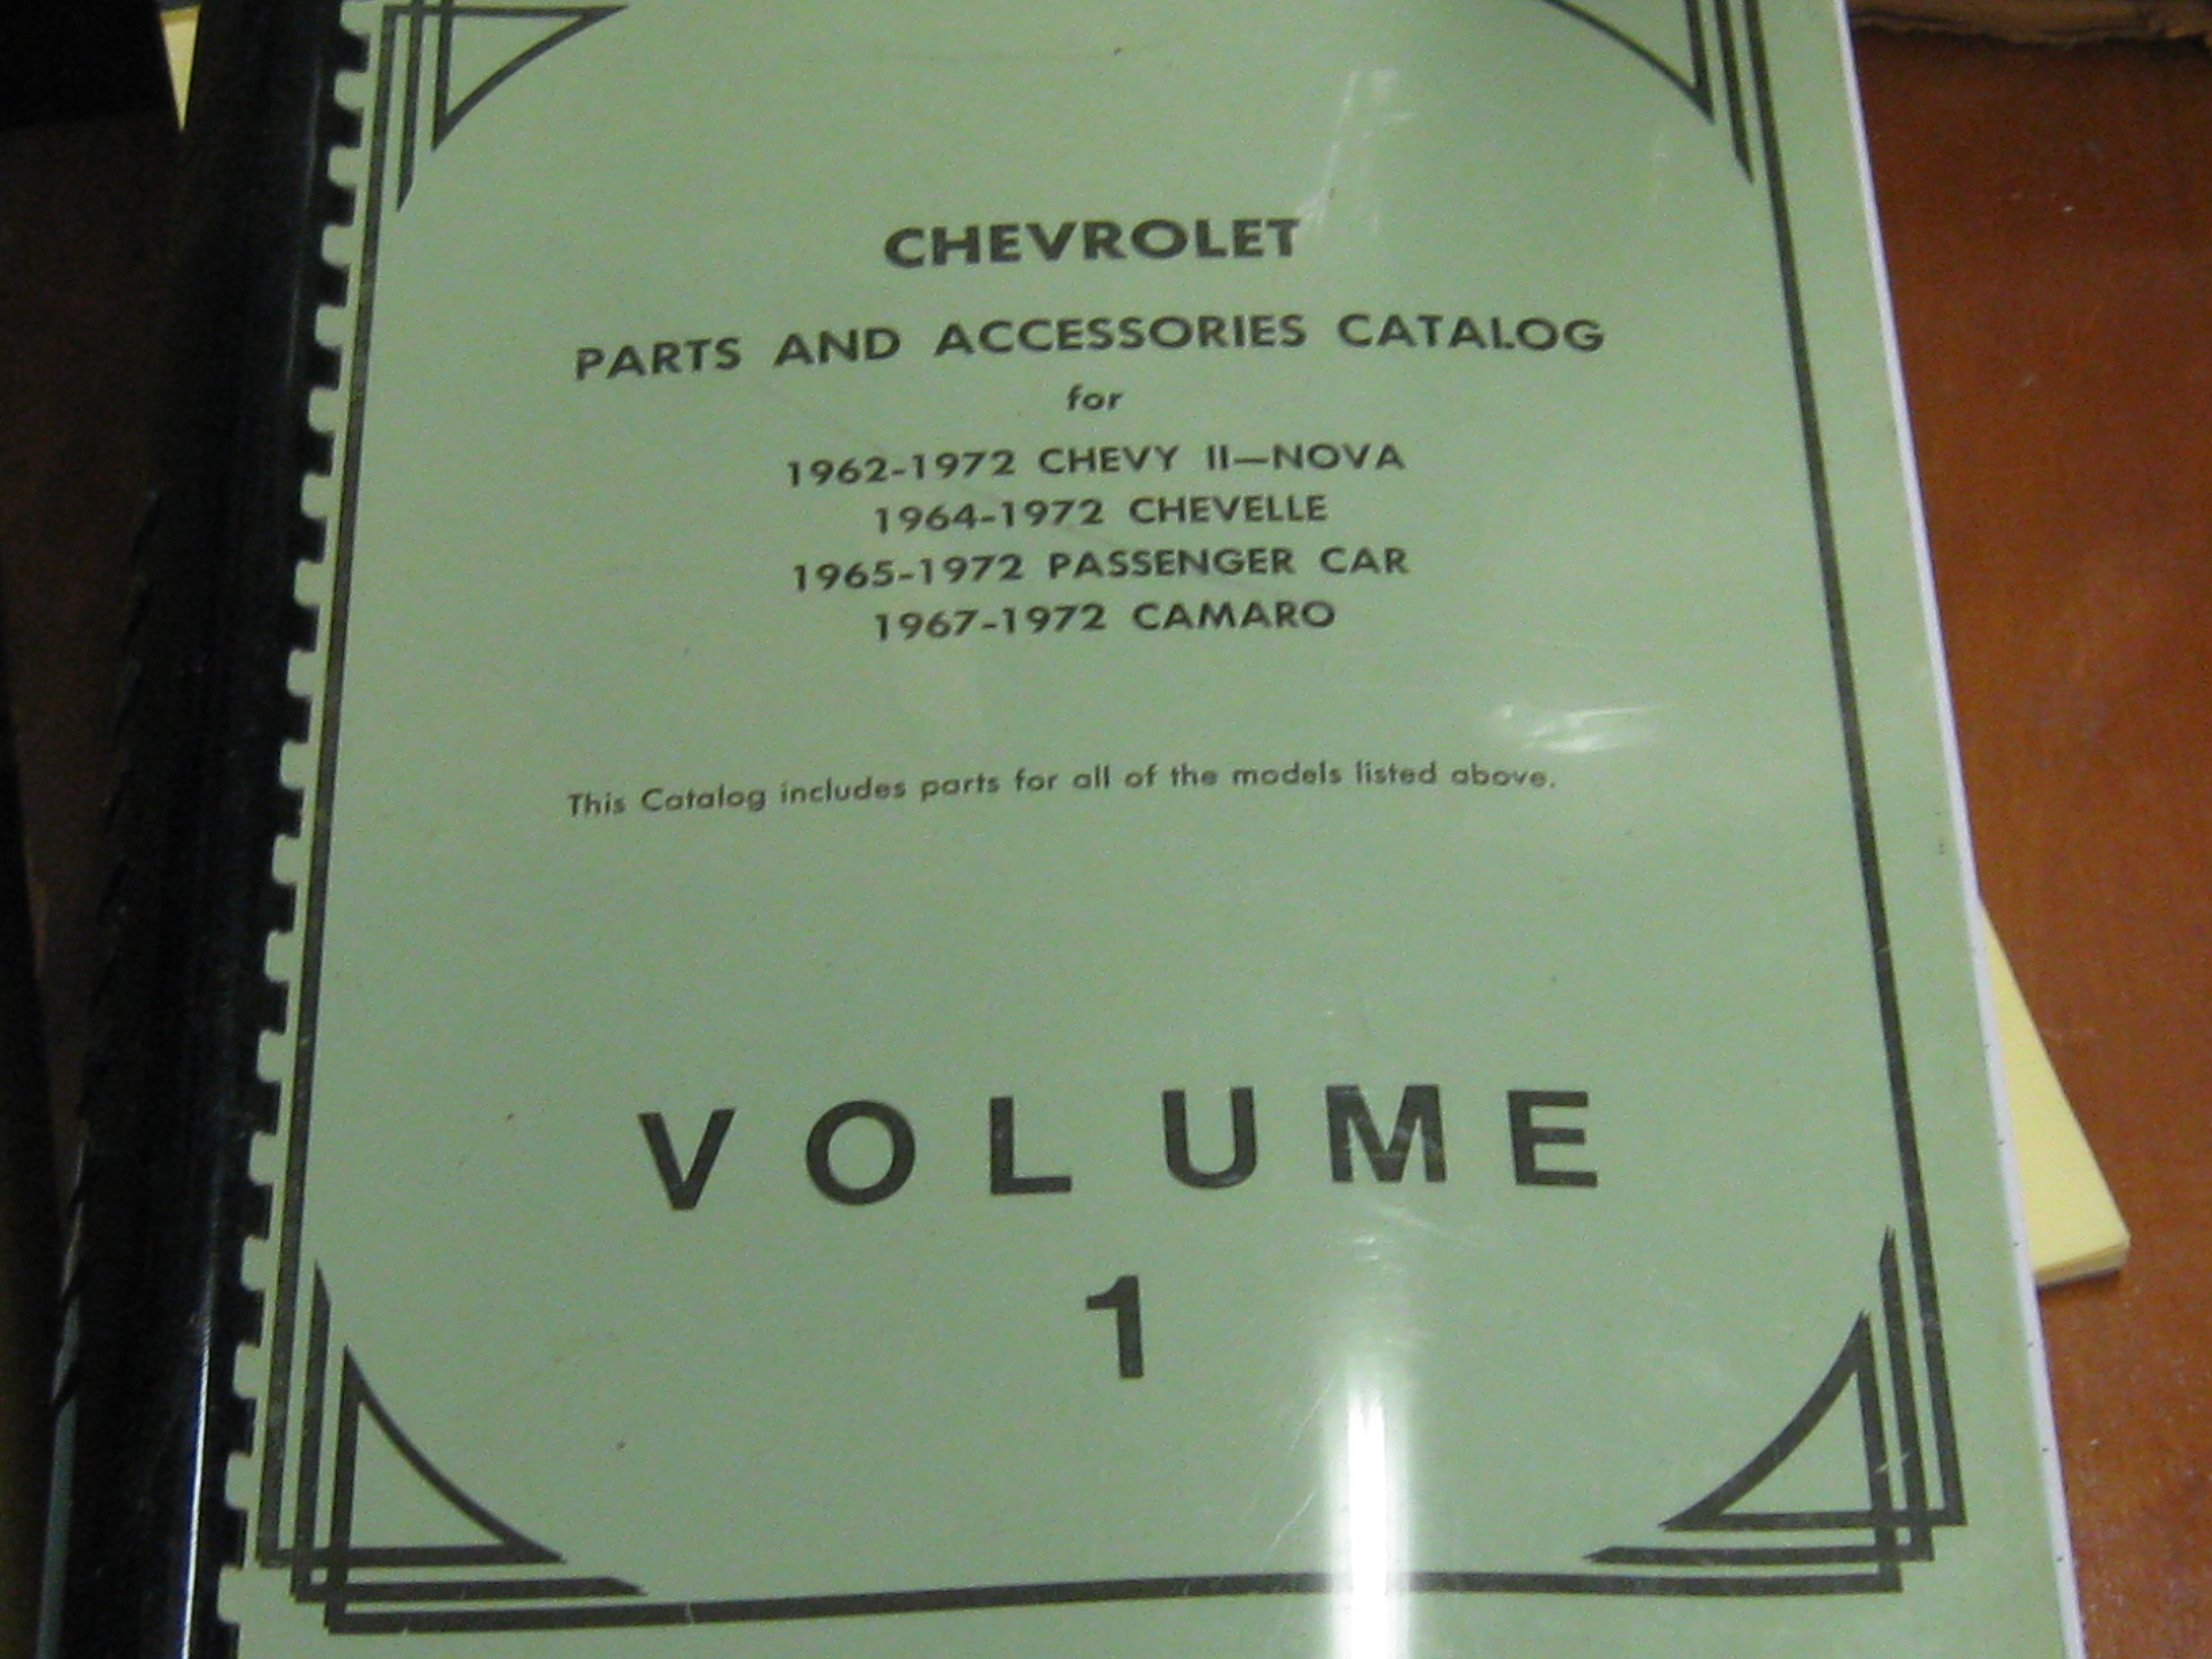 1962-1972 Chevrolet Parts and Accessories Catalog 4 volume